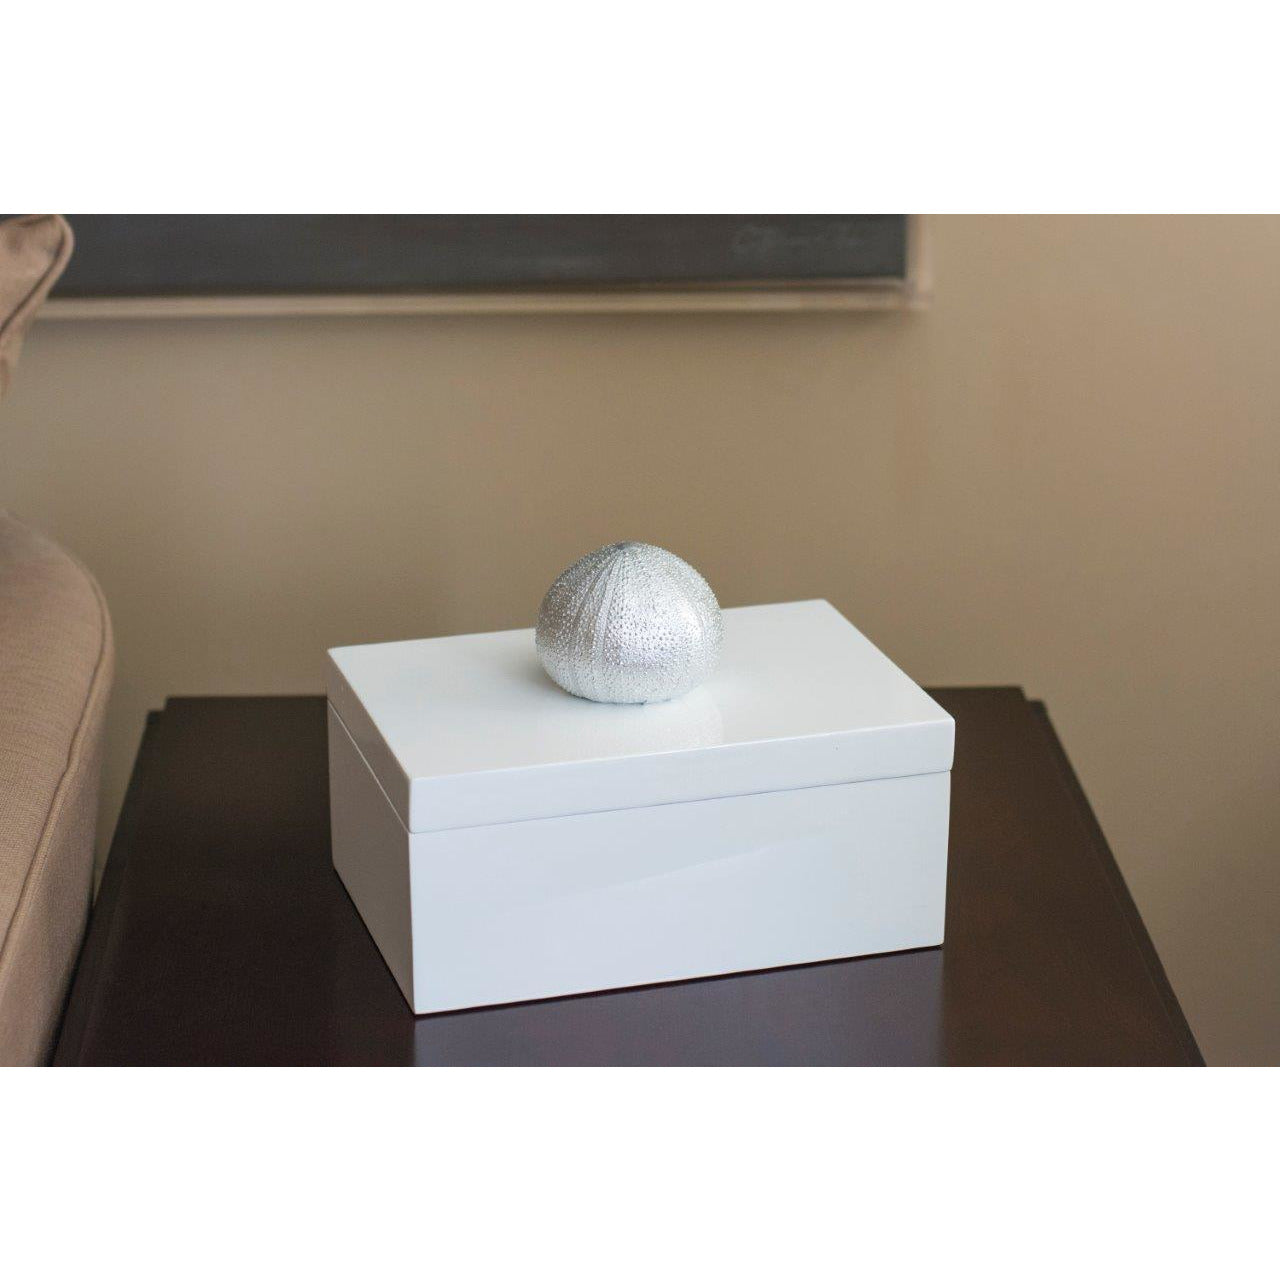 Silver Sea Urchin Rectangular Box - Couture Lamps